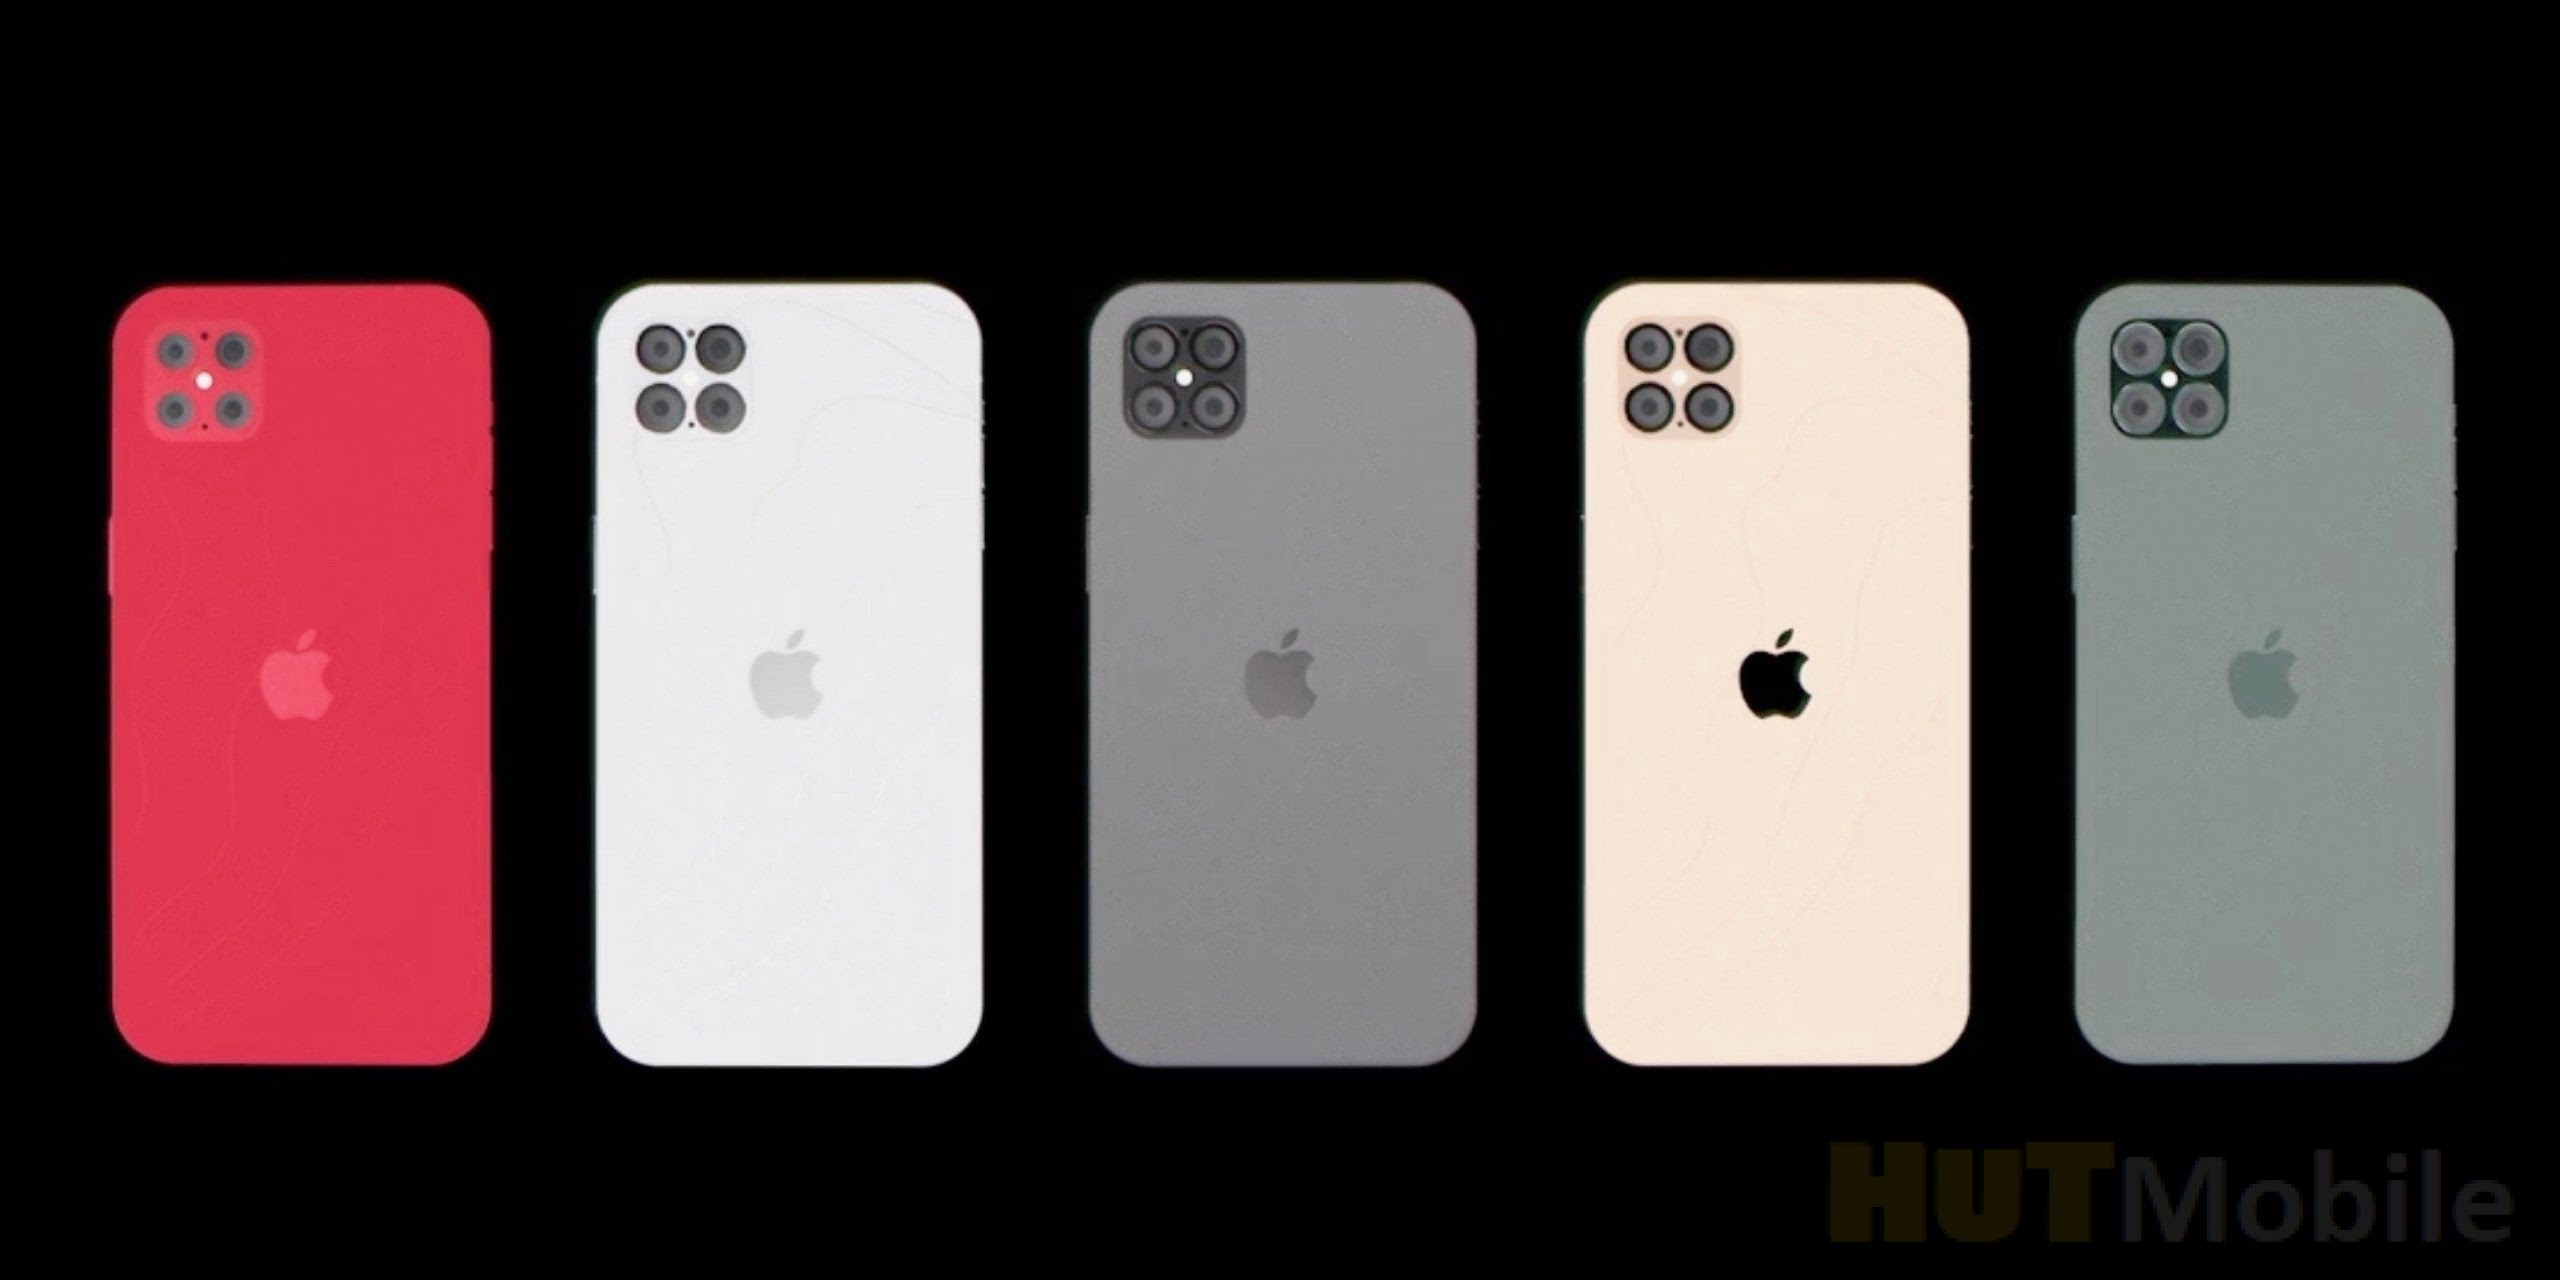 Review: iPhone 12 review specifications release date price Full Review -  Hut Mobile